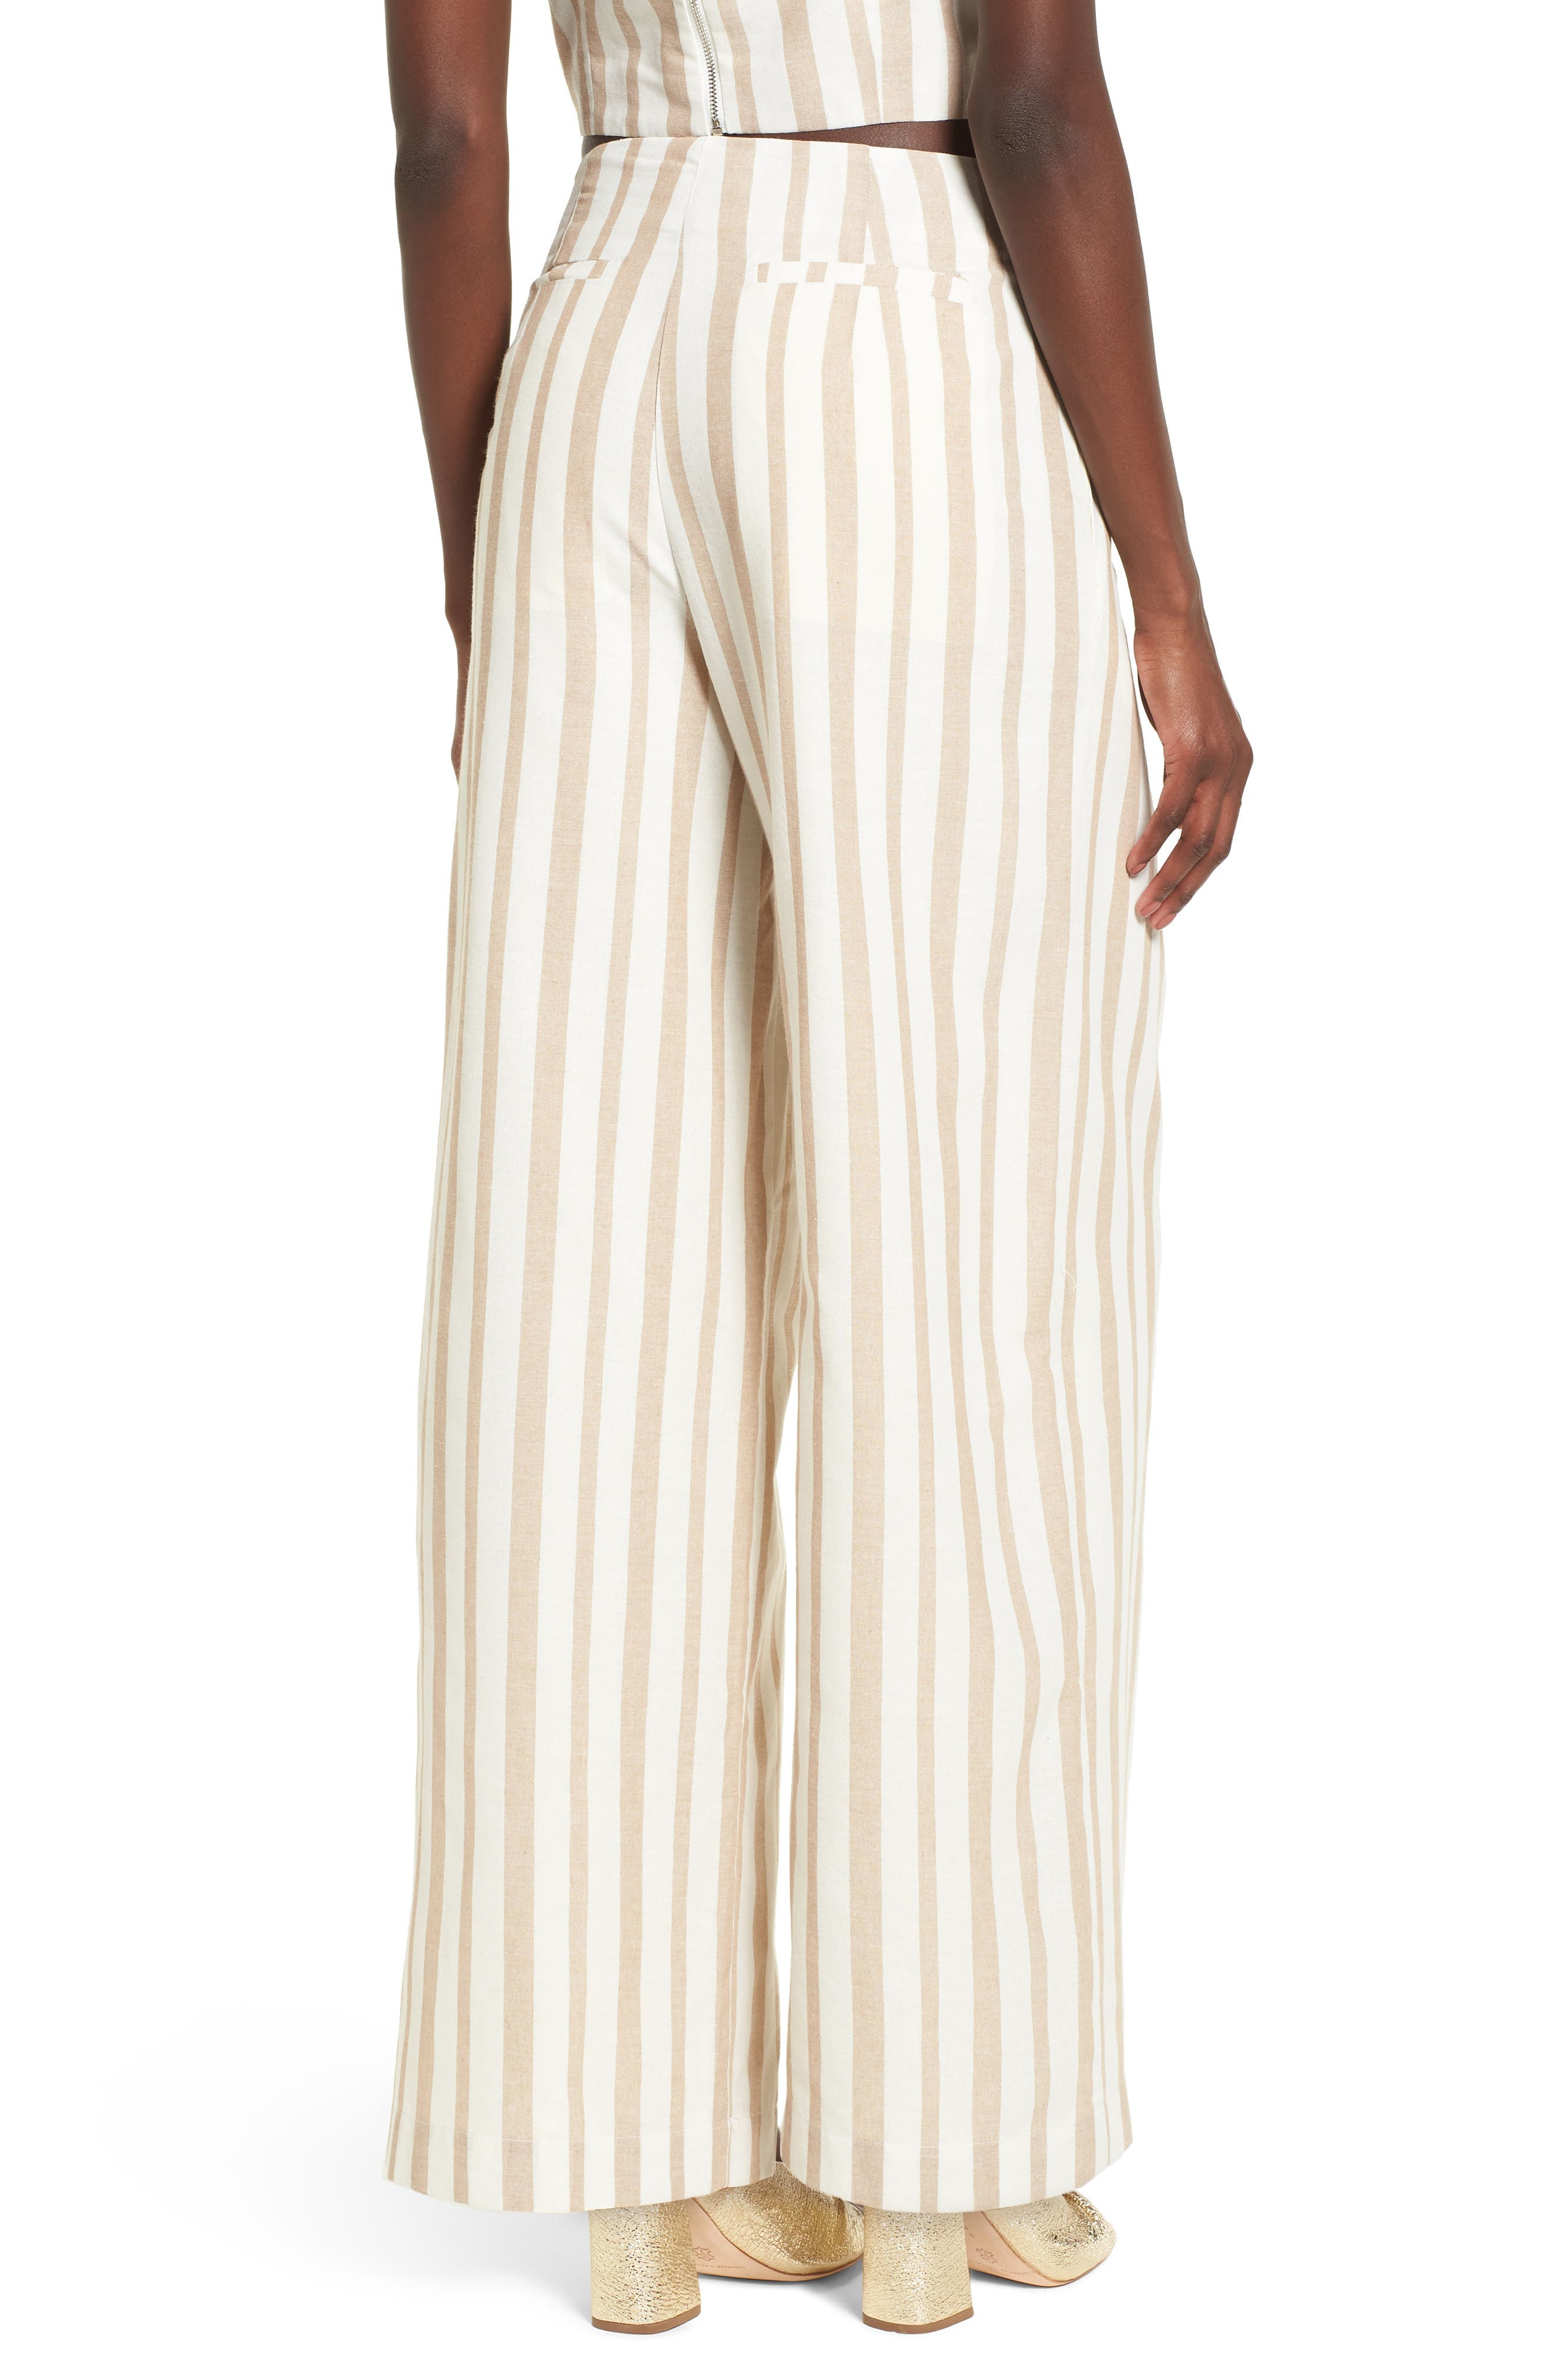 Chriselle x J.O.A. Lace-Up High Waist Wide Leg Pants,                             Alternate thumbnail 7, color,                             Sand Stripe